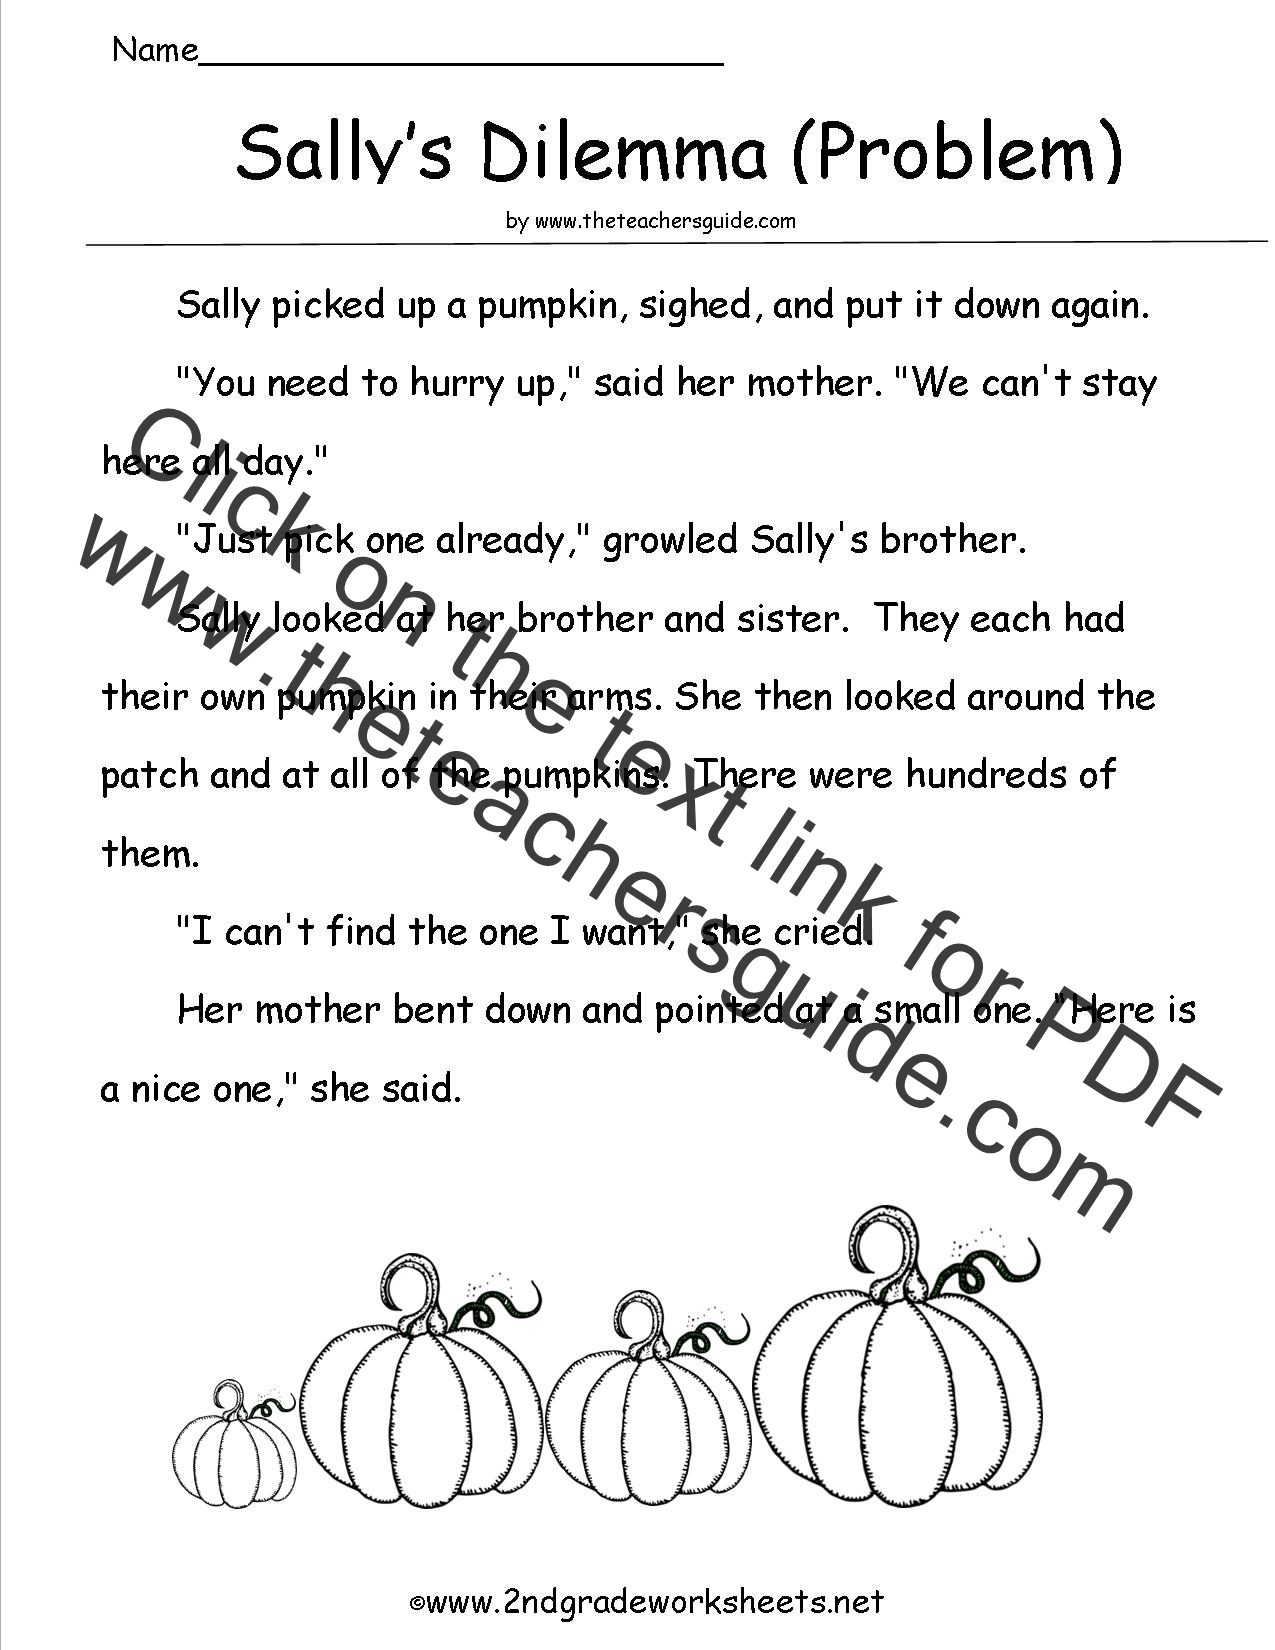 Worksheet Free Reading Worksheets For 2nd Grade Grass